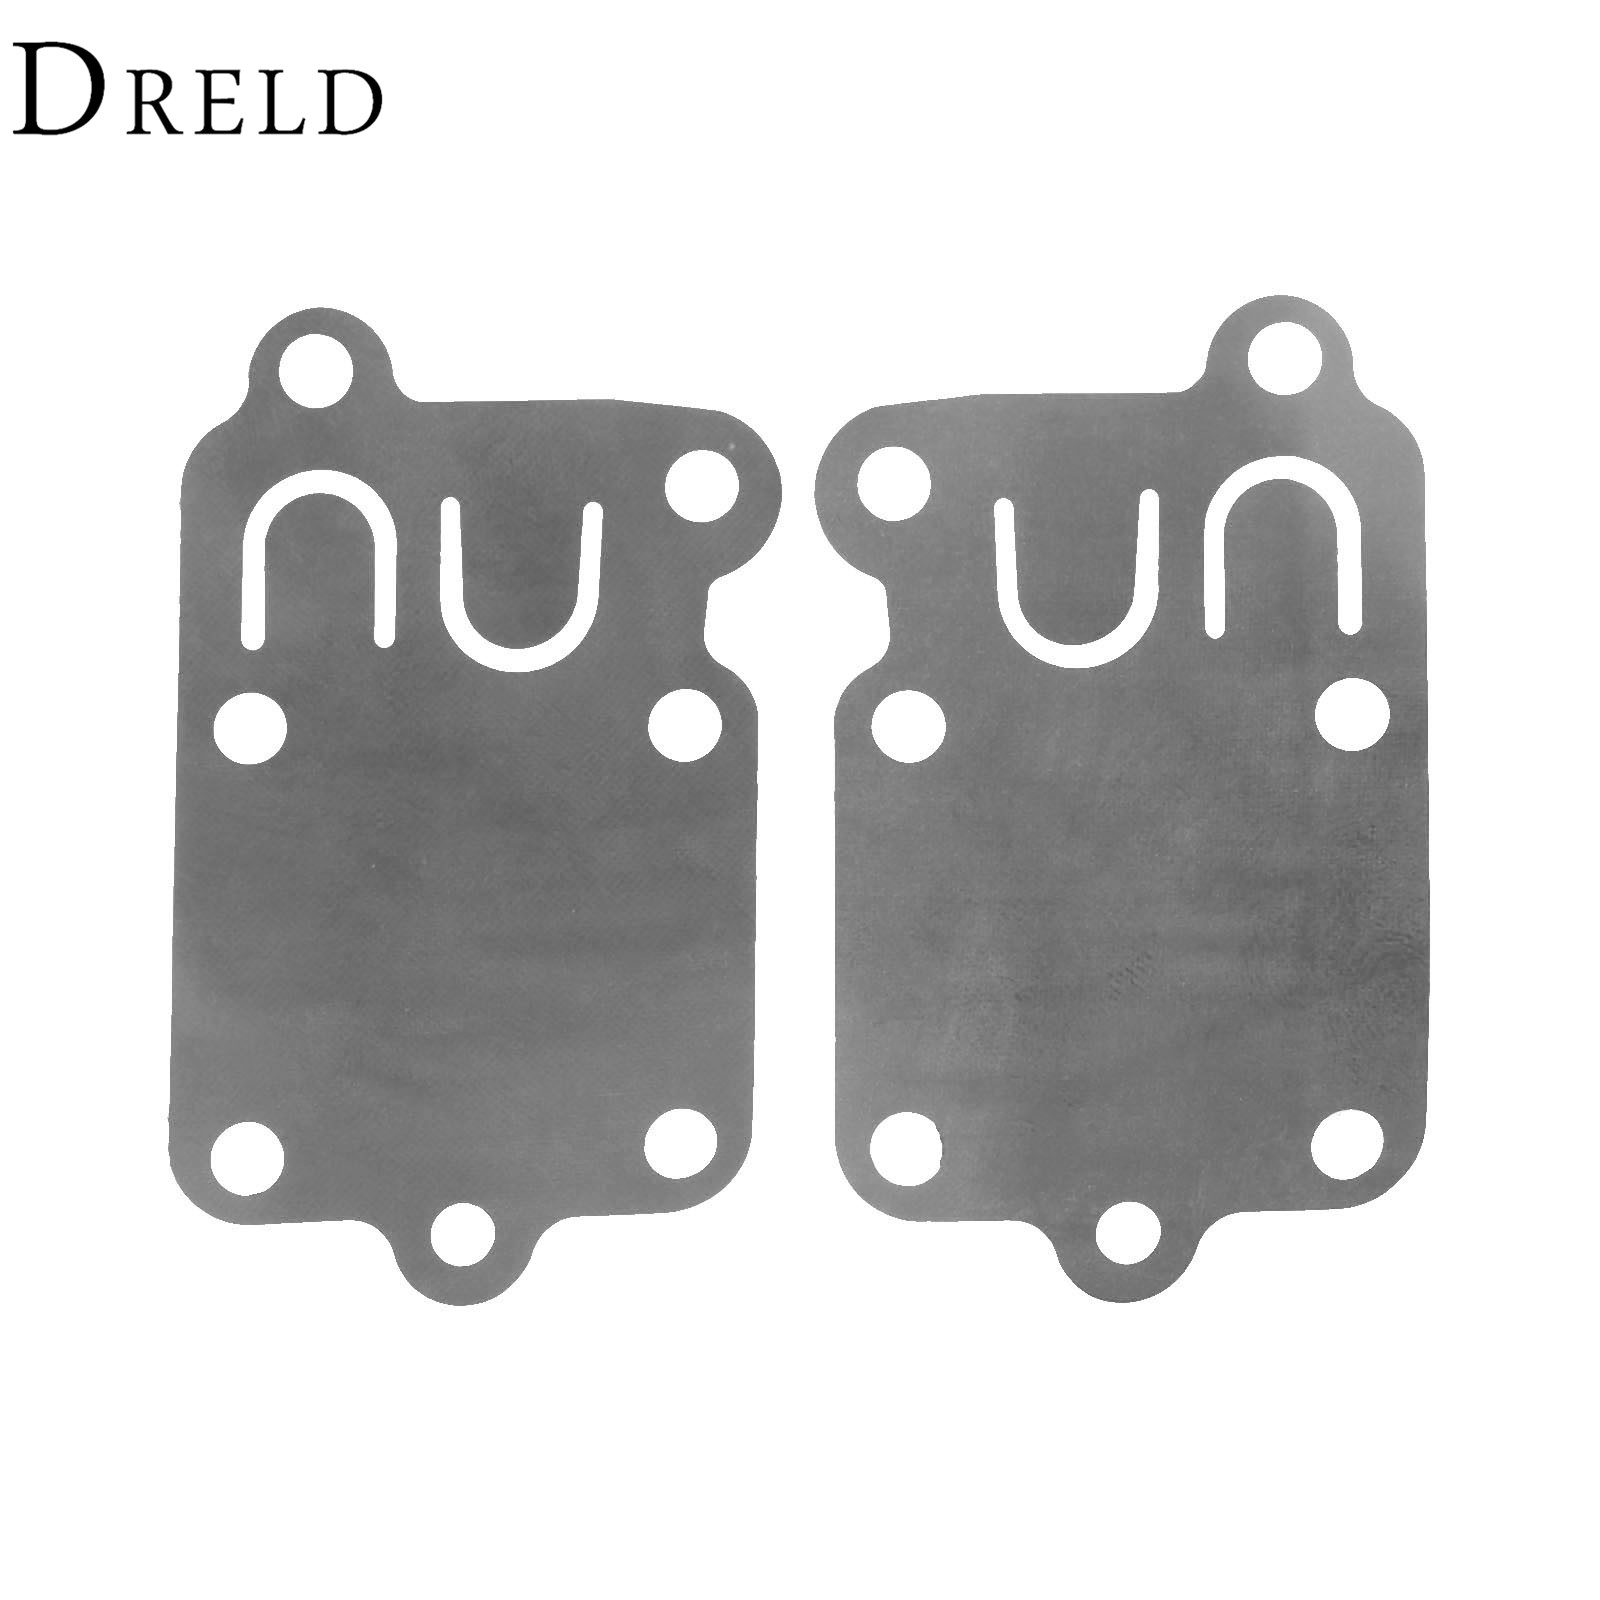 DRELD 2Pcs Rubber Carburetor Carb Diaphragm Gasket for Briggs and Stratton Carburettor Oil Gasket Garden Tools Parts